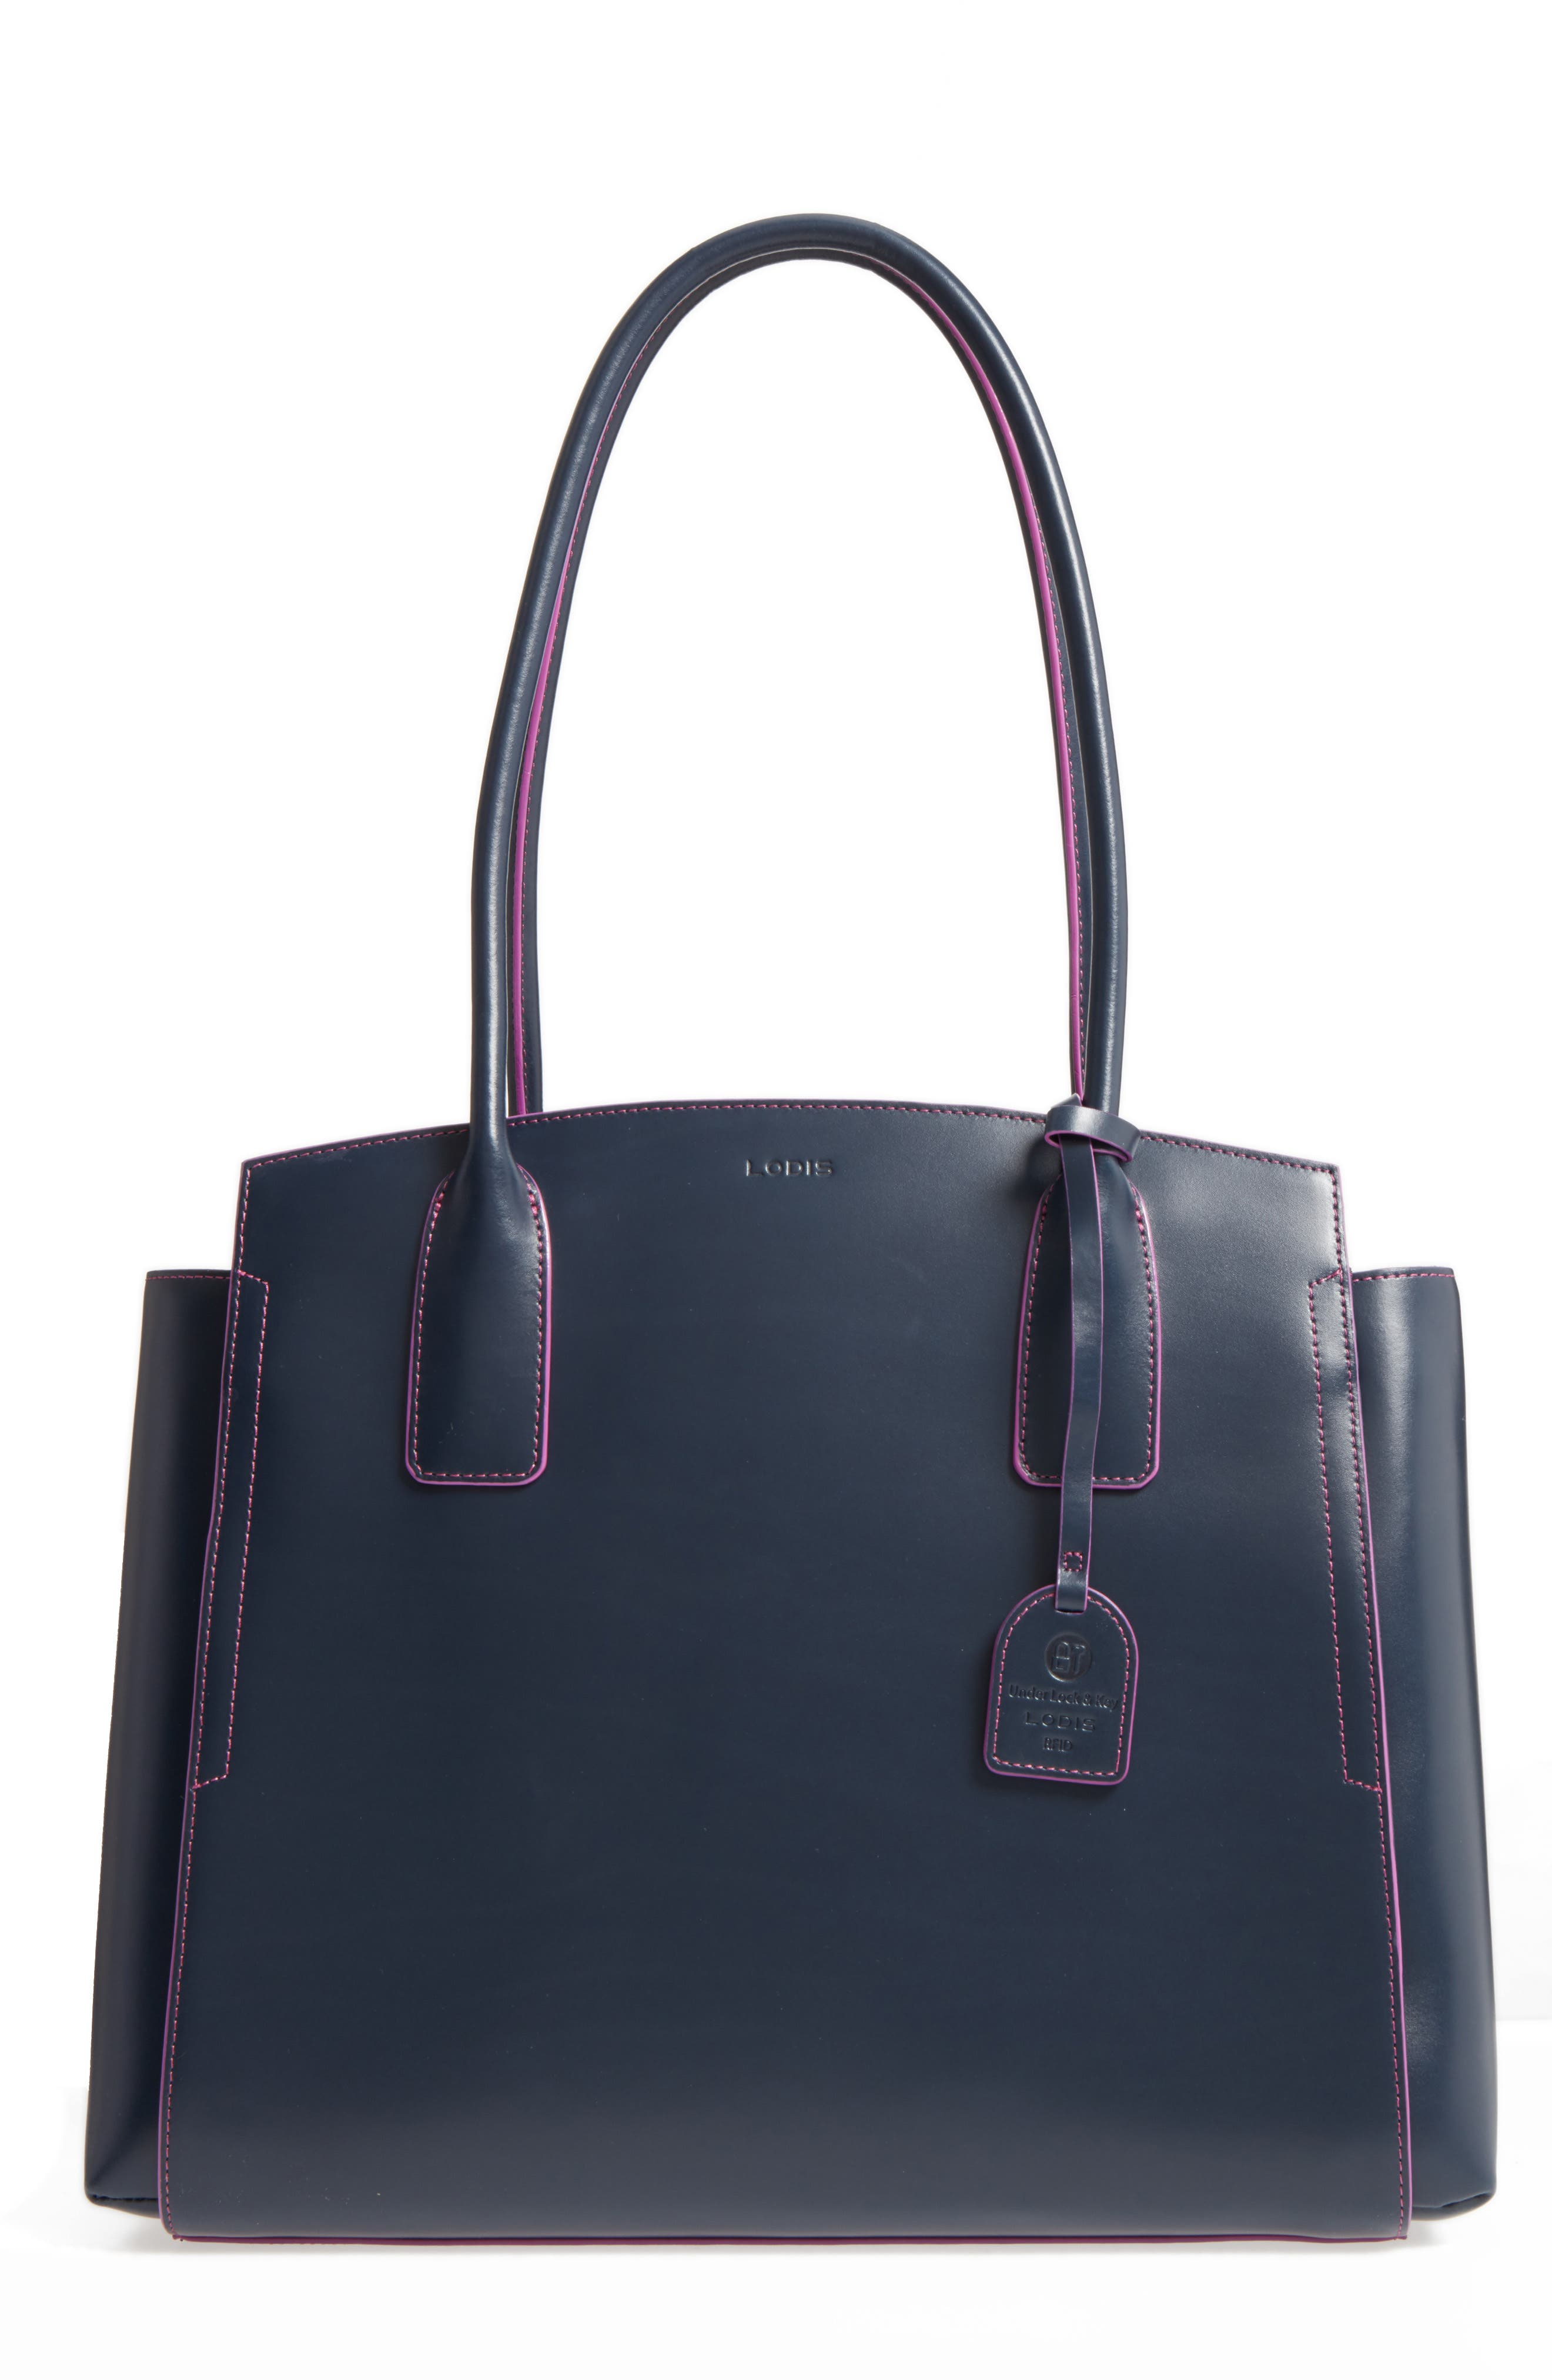 LODIS Los Angeles Audrey Under Lock & Key - Zola RFID Leather Tote